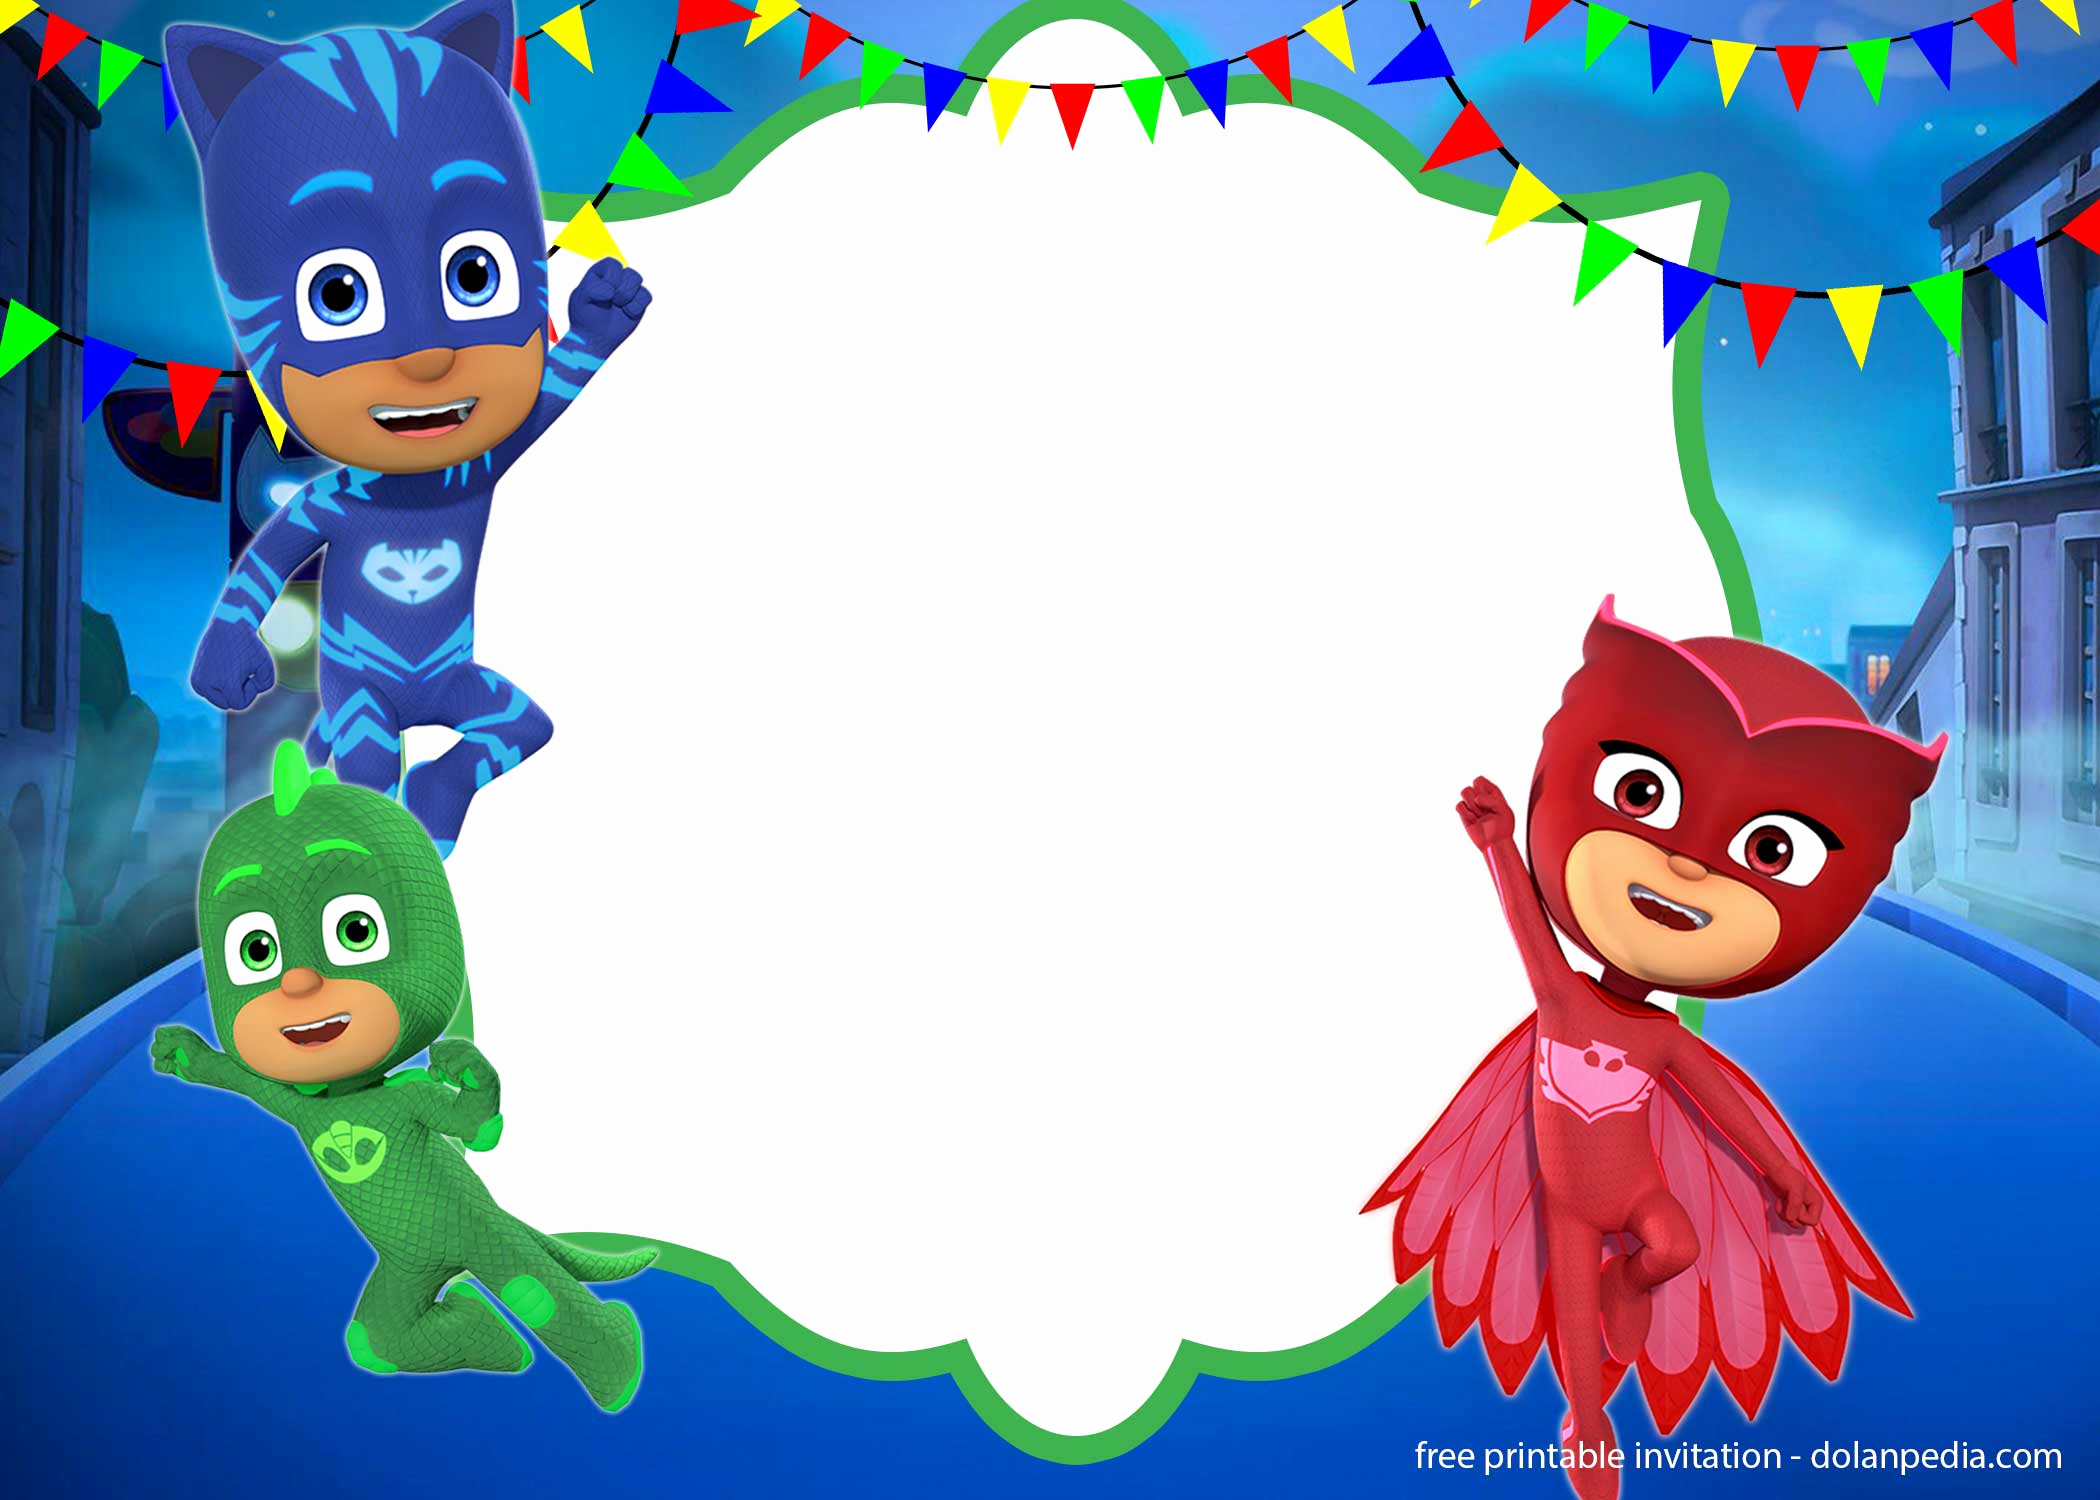 Pj Mask Invitation Template Beautiful Free Pj Masks Invitation Templates – Editable and